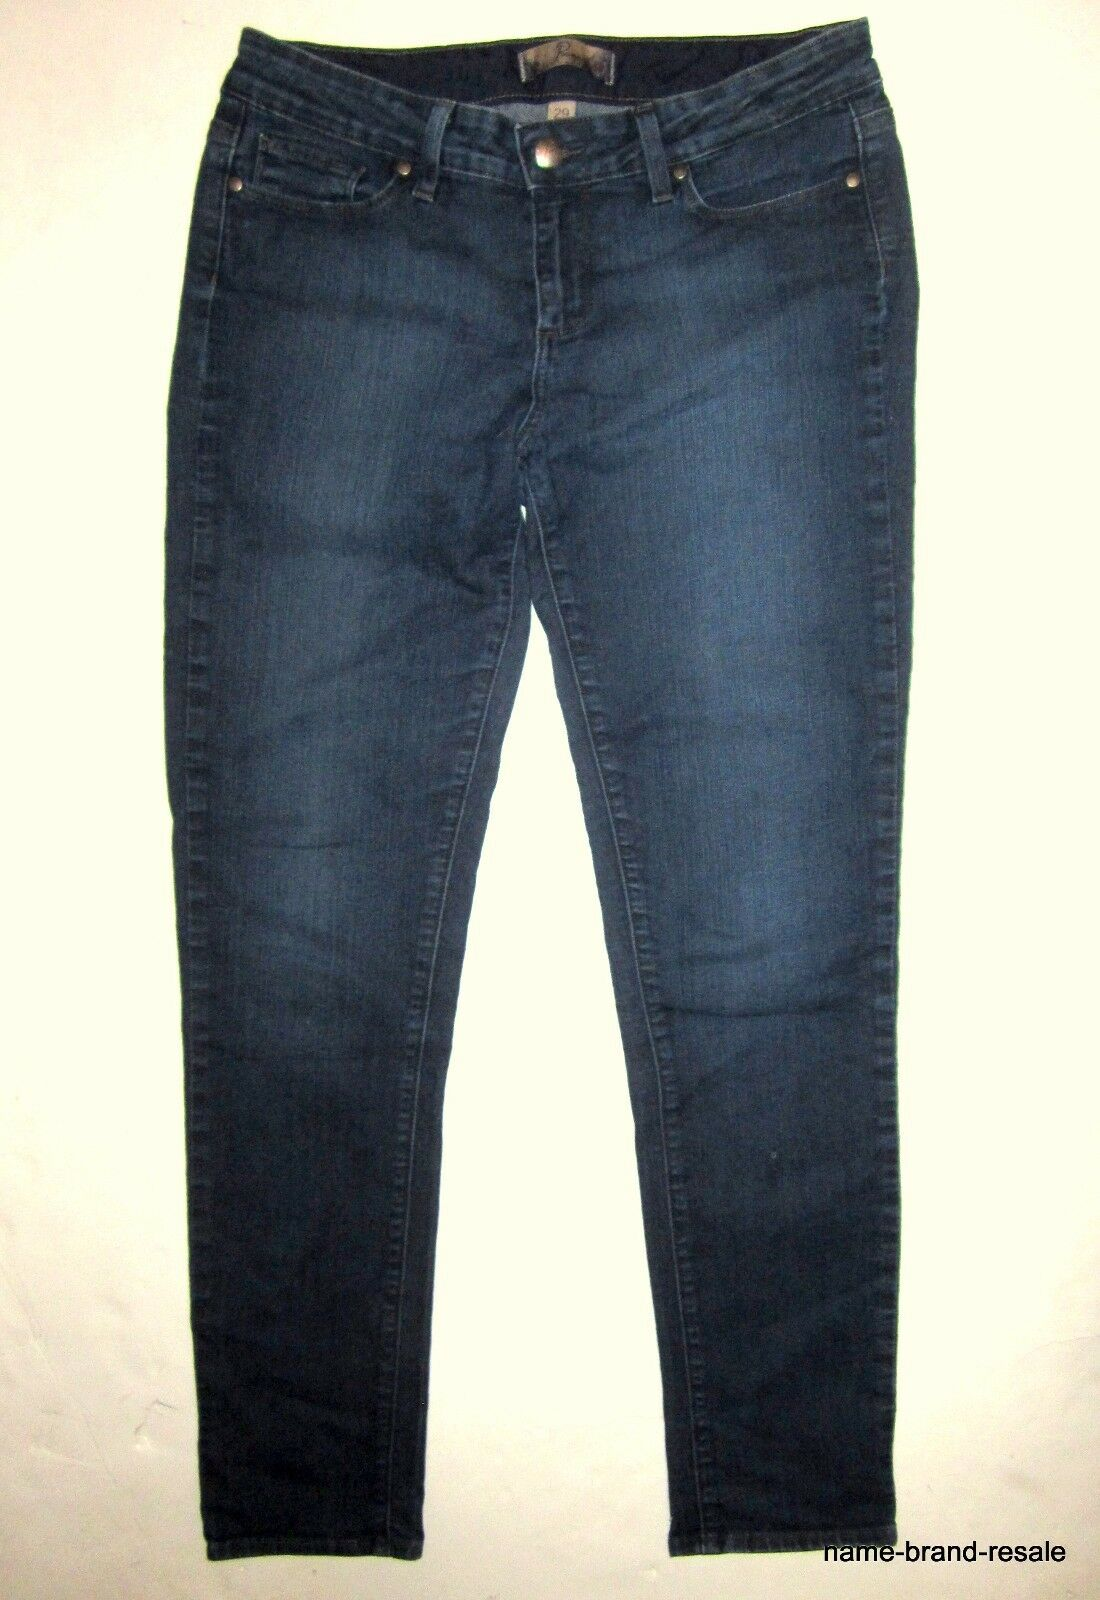 PAIGE PREMIUM DENIM Peg Skinny Leg JEANS Womens 29 Dark Wash Slim Leg Ankle